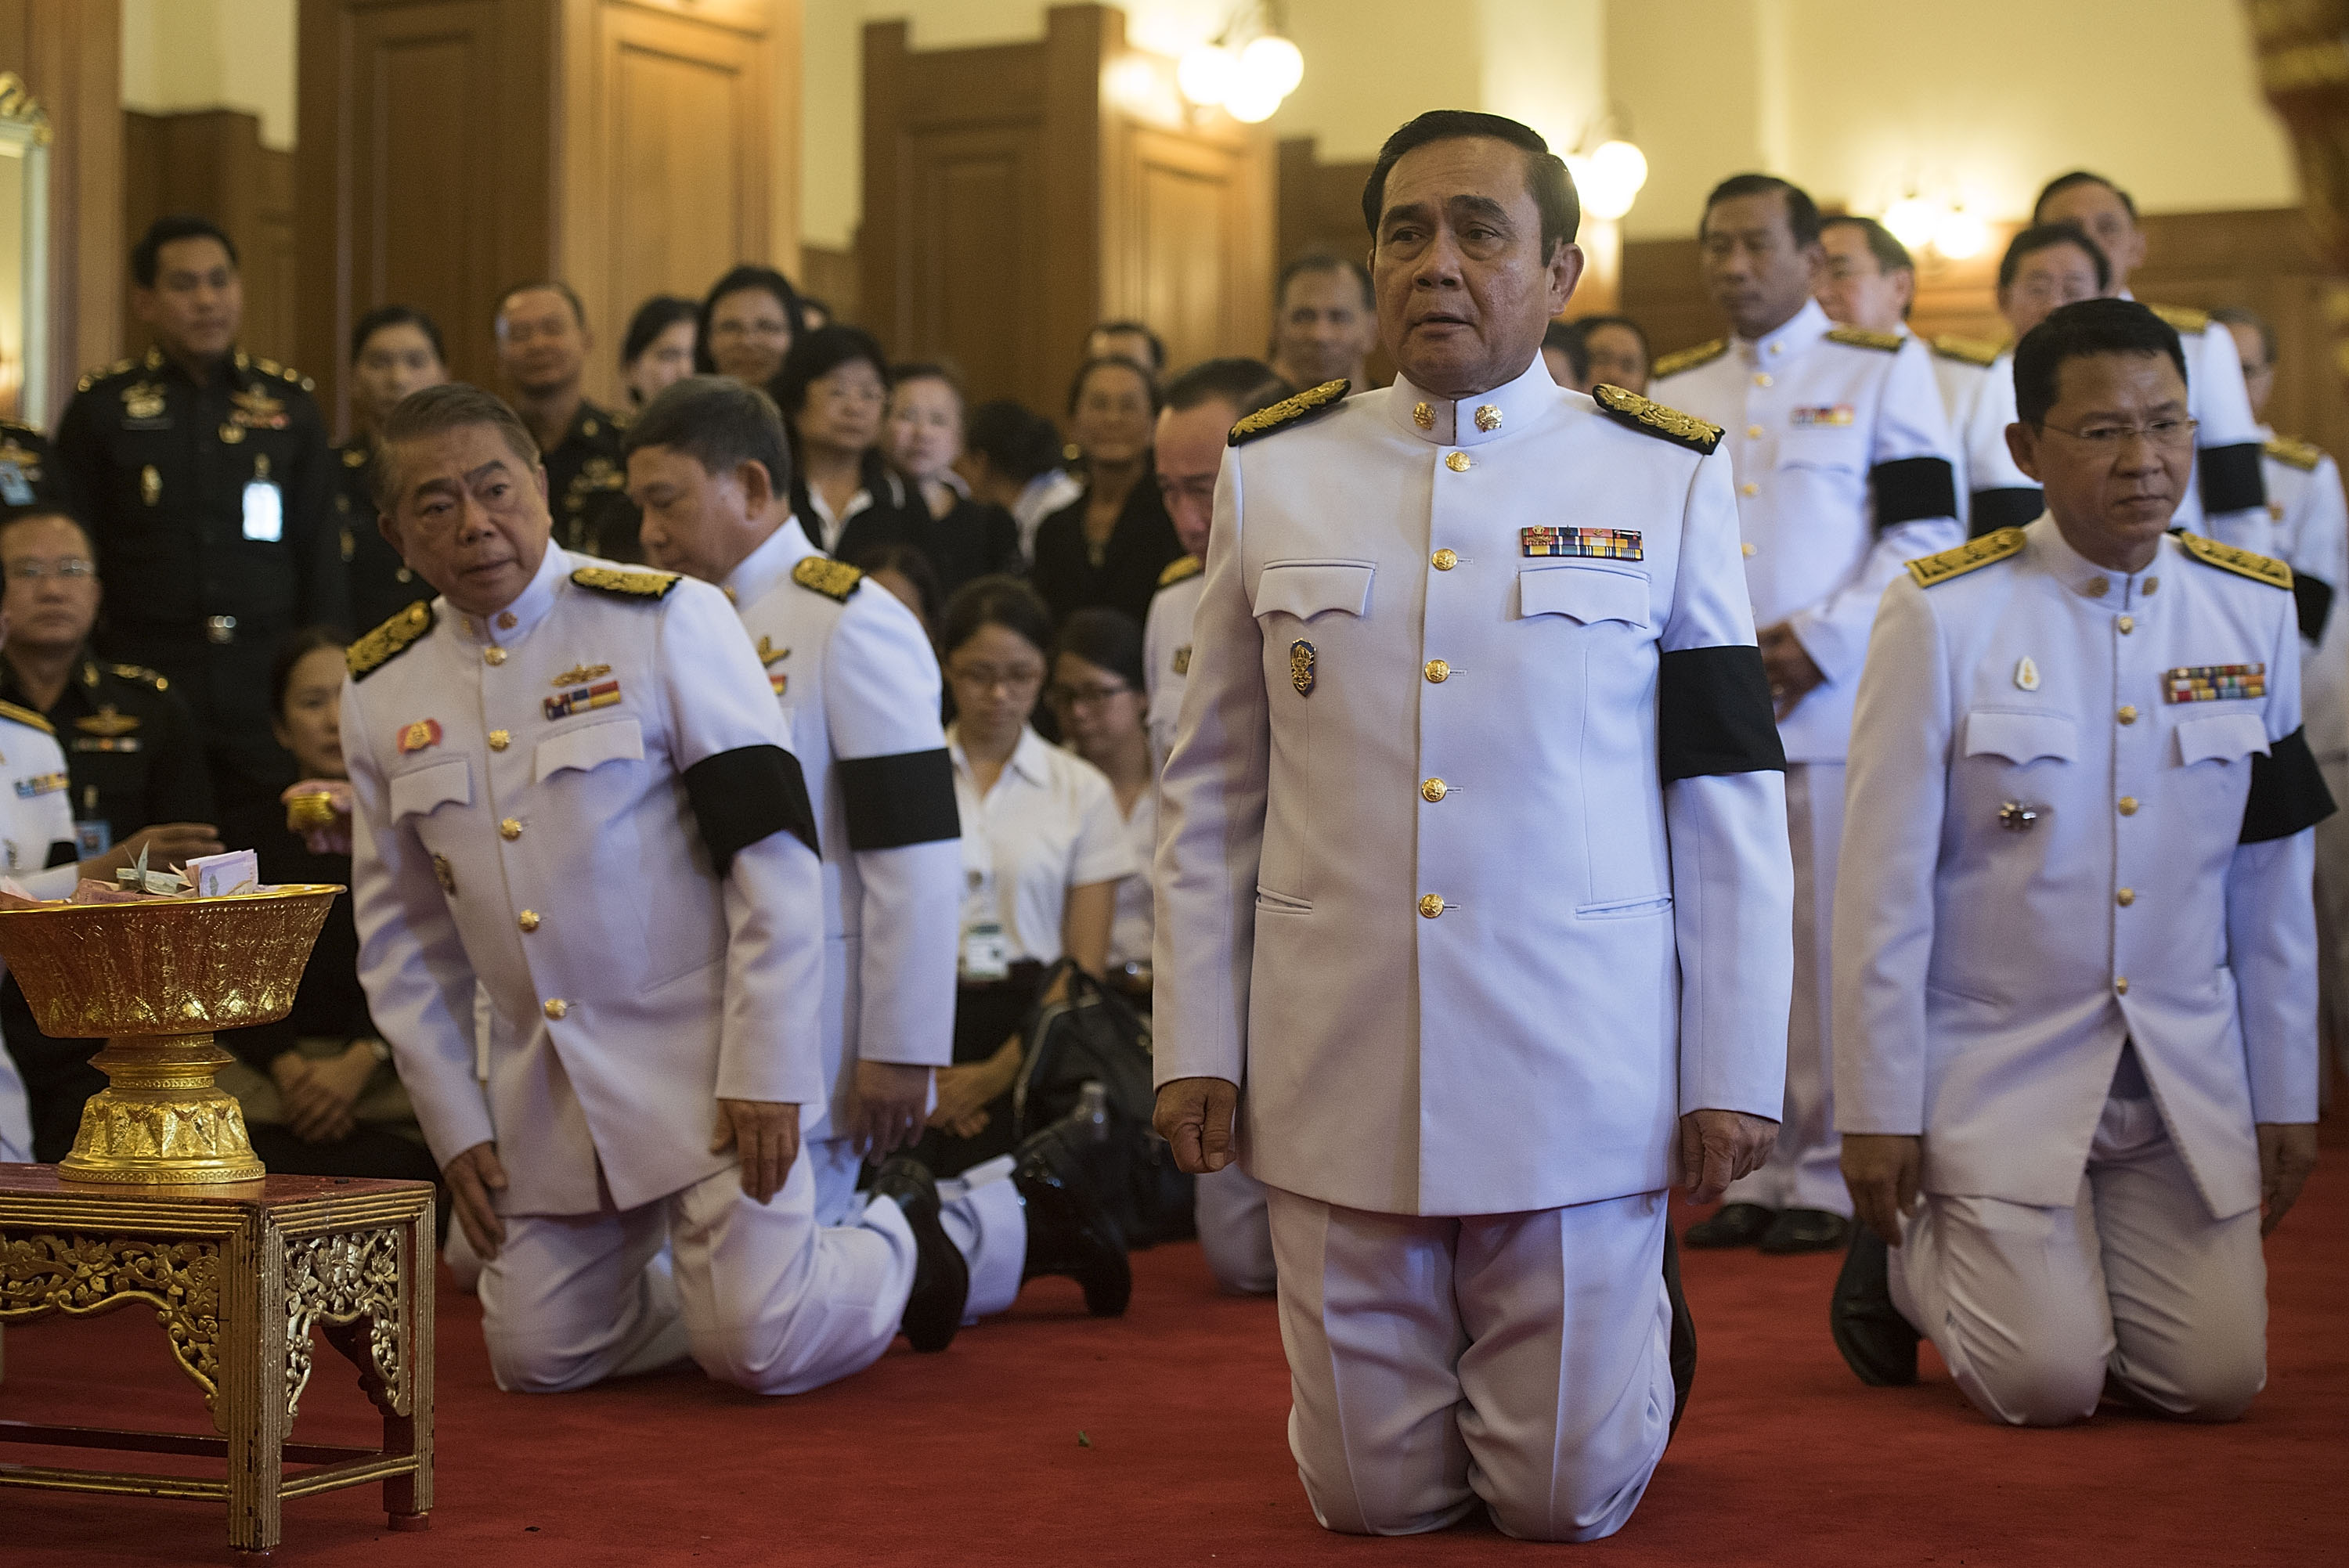 Thai junta leader, General Prayuth Chan-ocha, attends the royal bathing ceremony at the Grand Palace on Oct. 14, 2016, in Bangkok